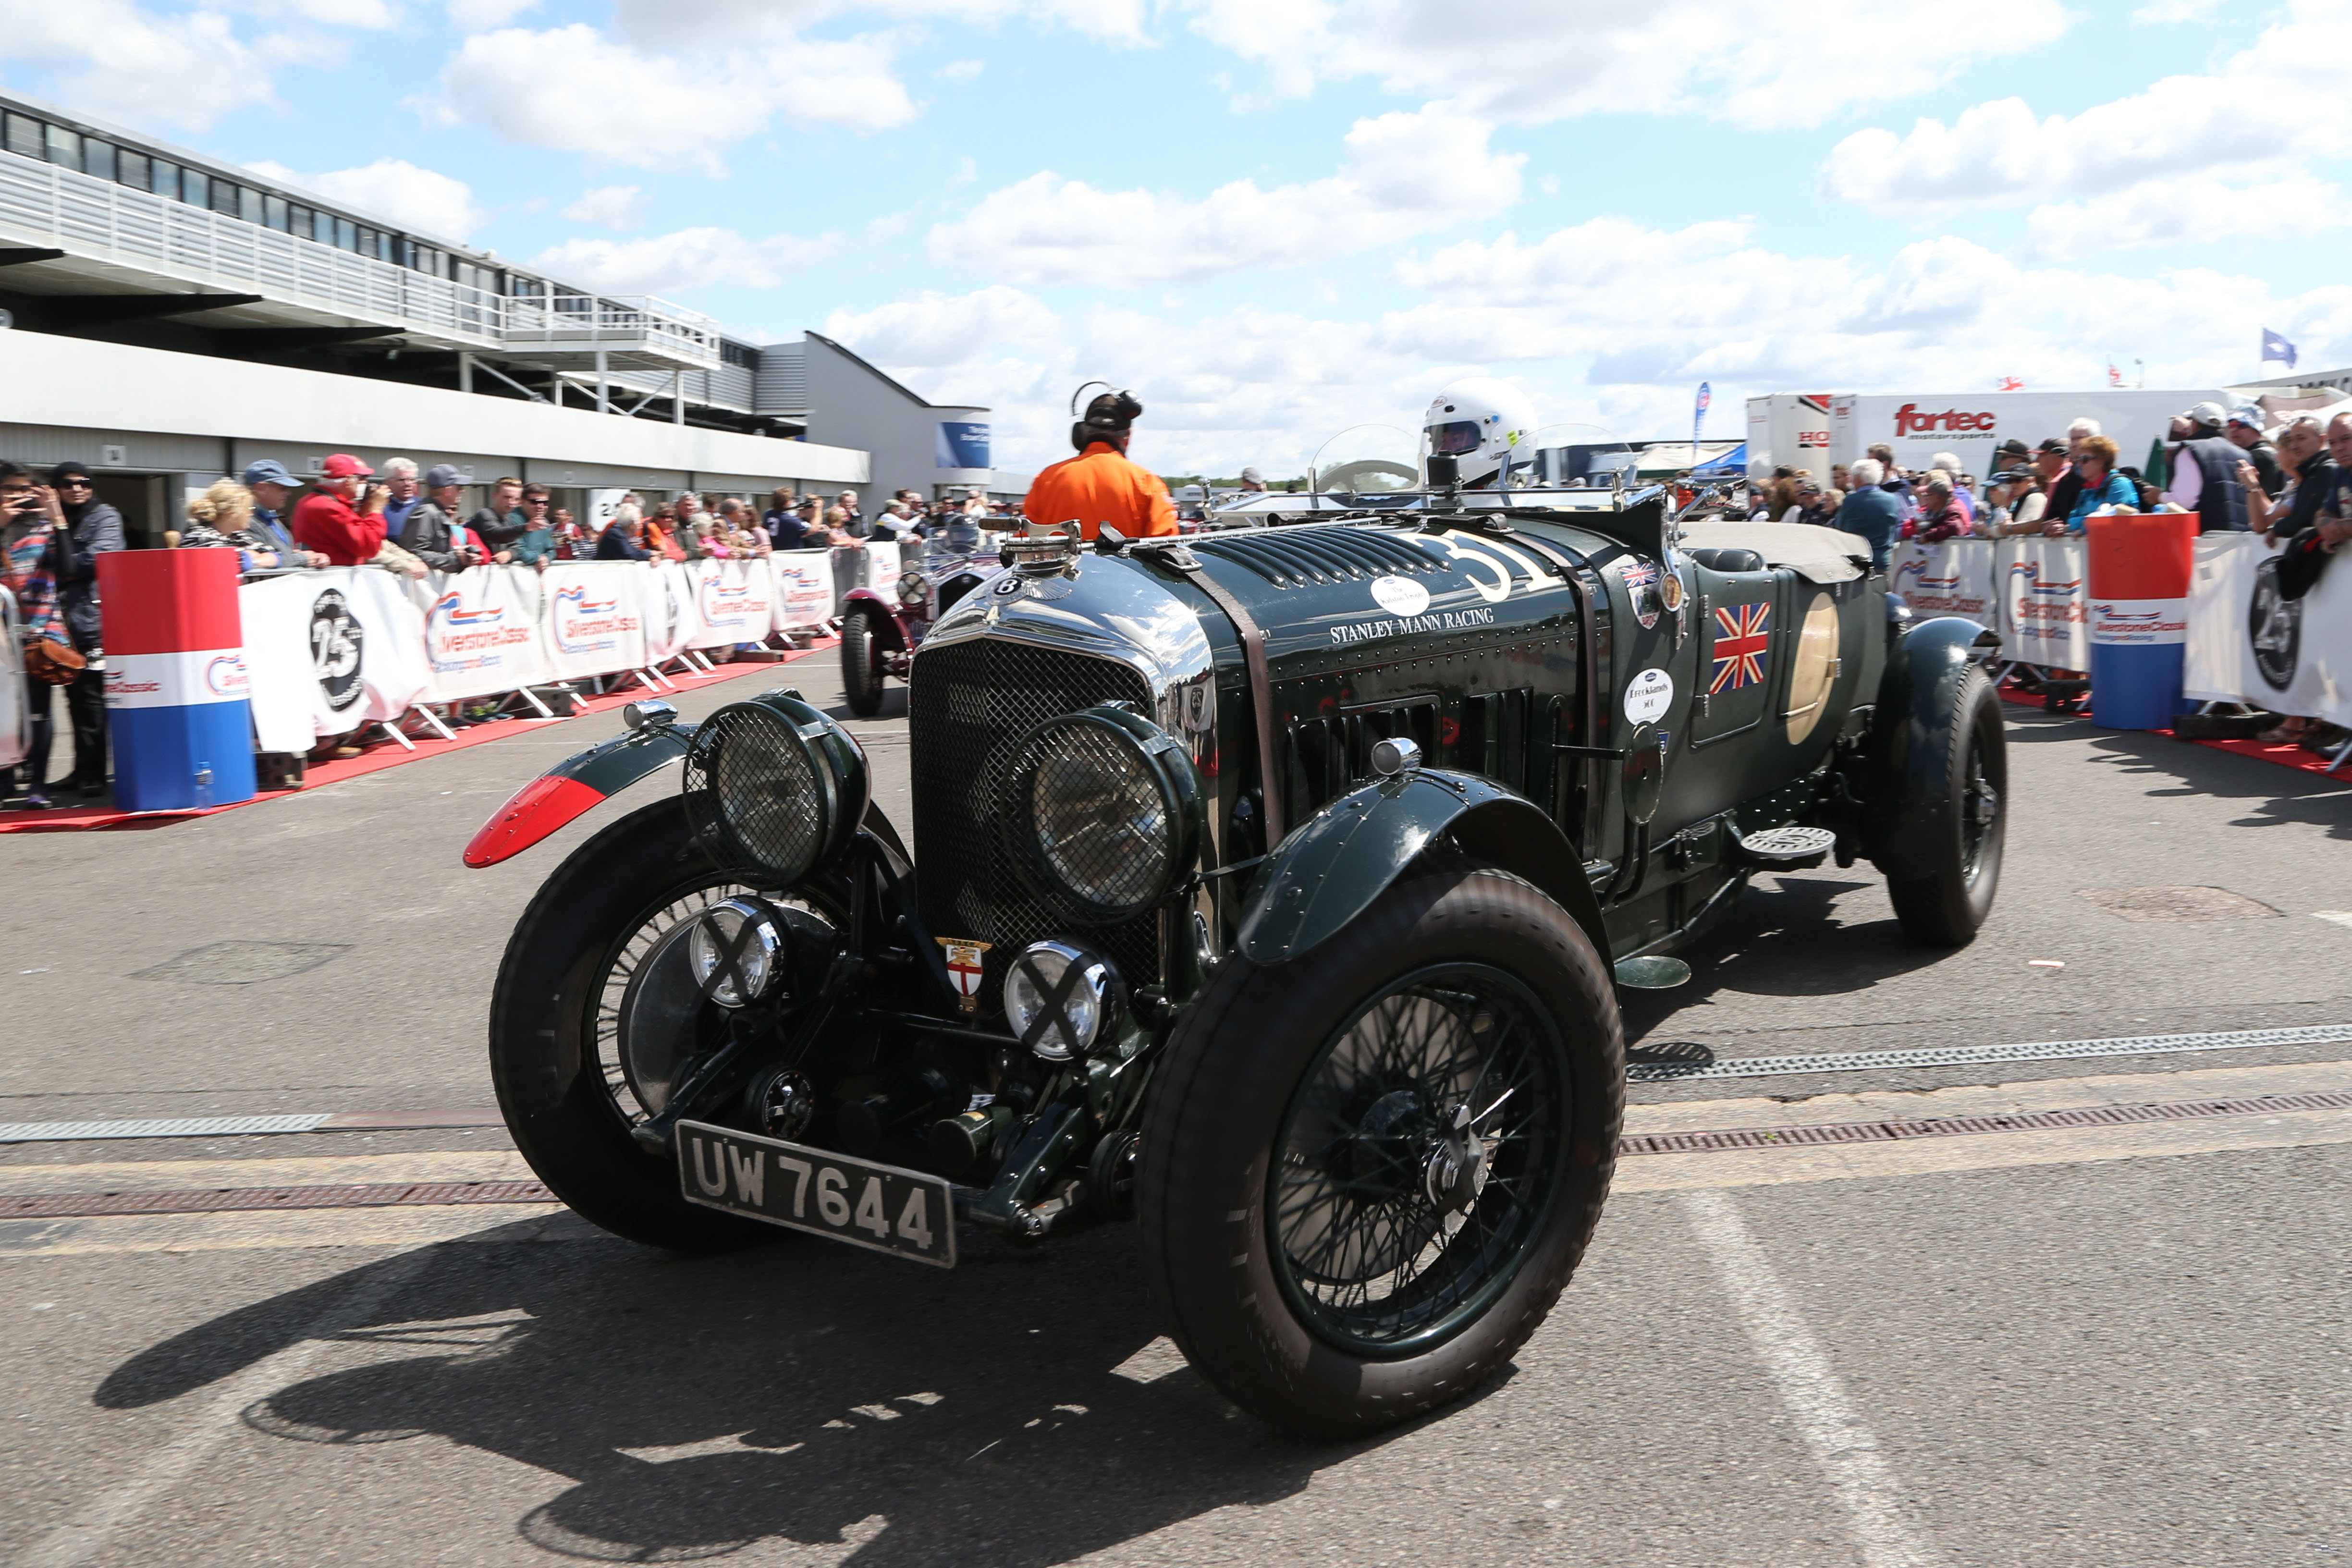 Bentley in Silverstone Classic Paddock